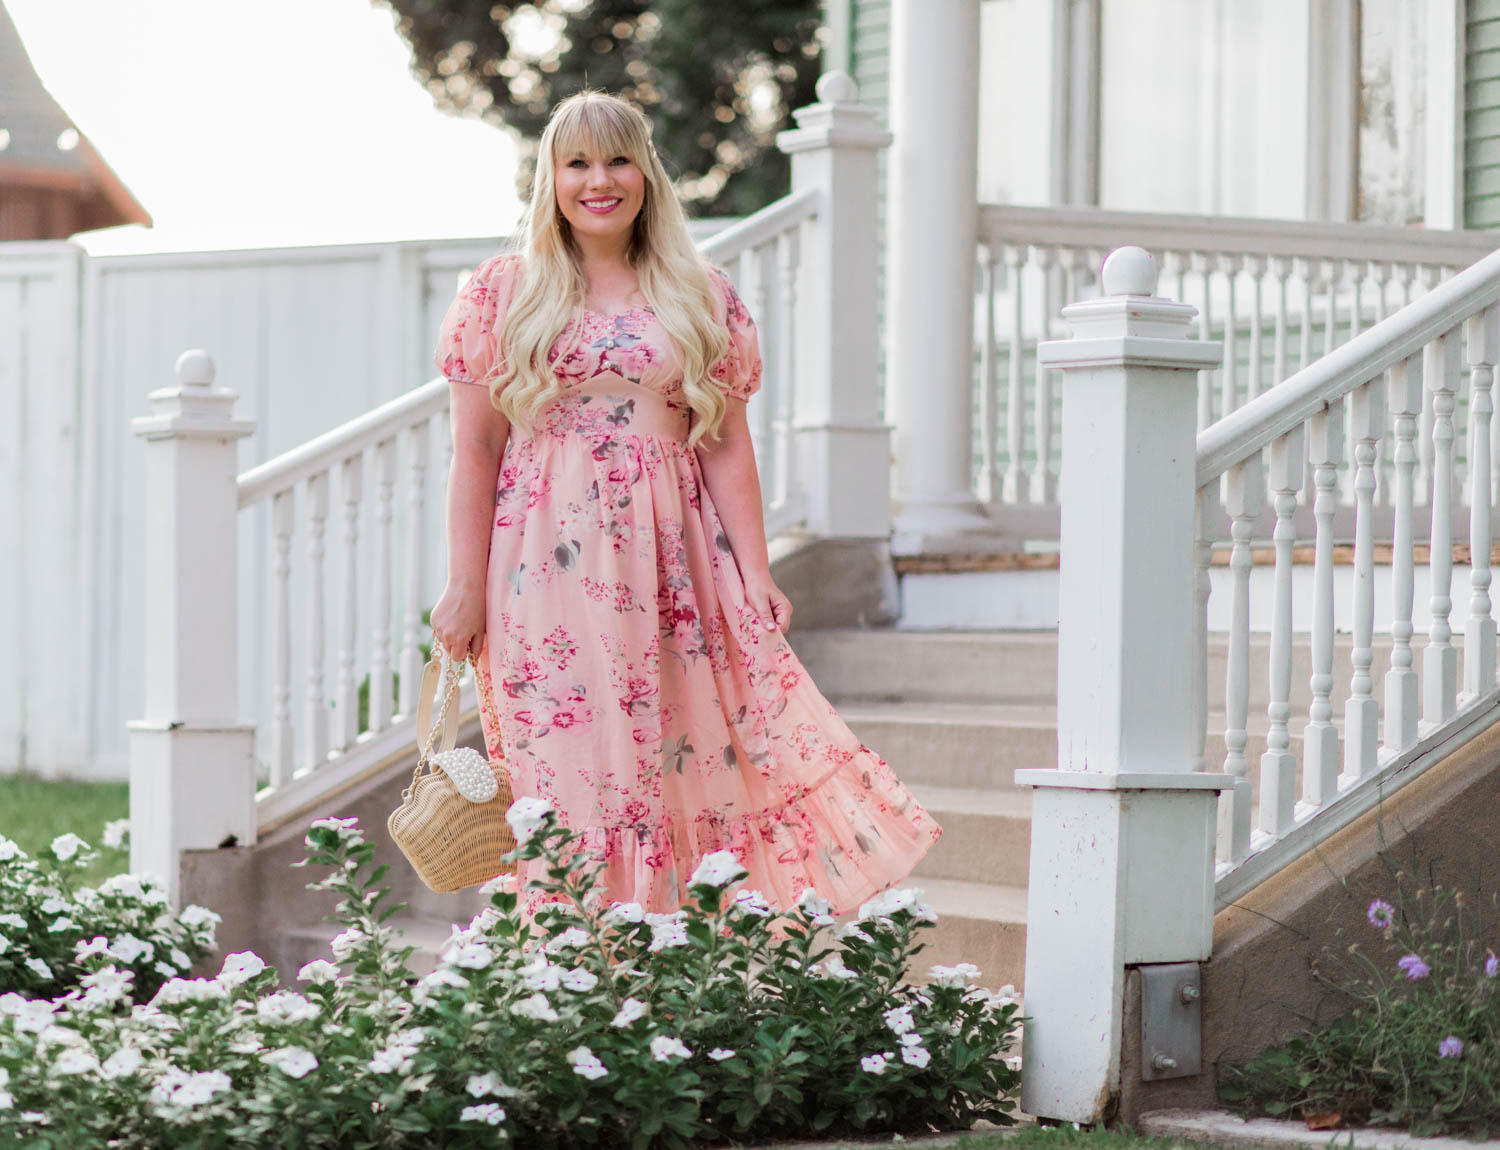 Elizabeth Hugen of Lizzie in Lace shares her July 2019 Month in Review along with a gorgeous pink feminine outfit!